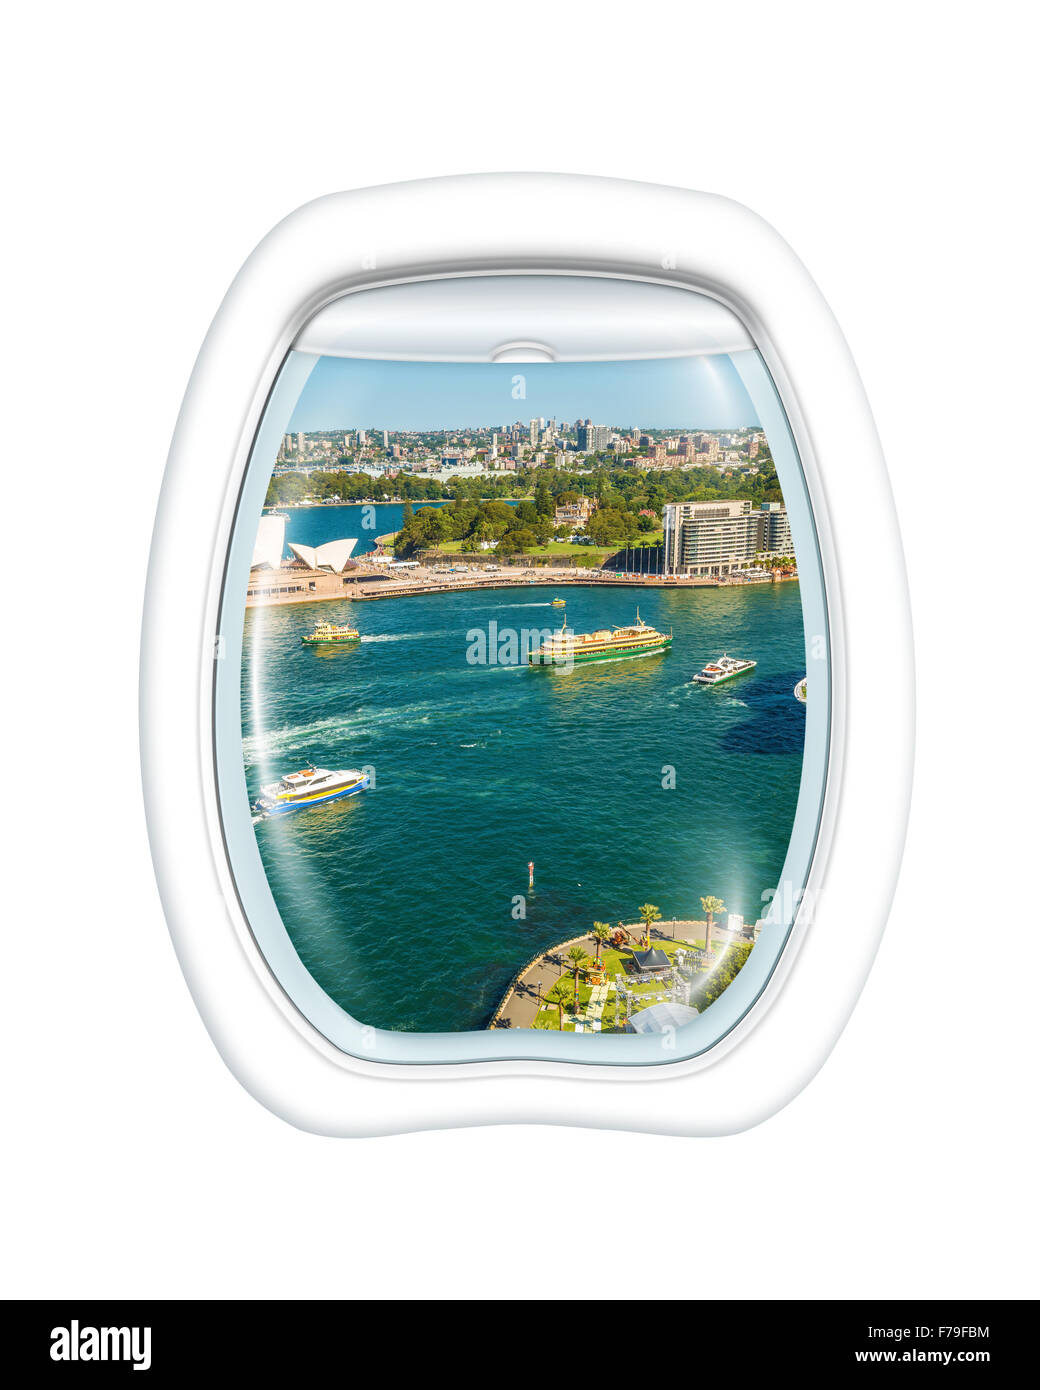 Sydney aerial view - Stock Image